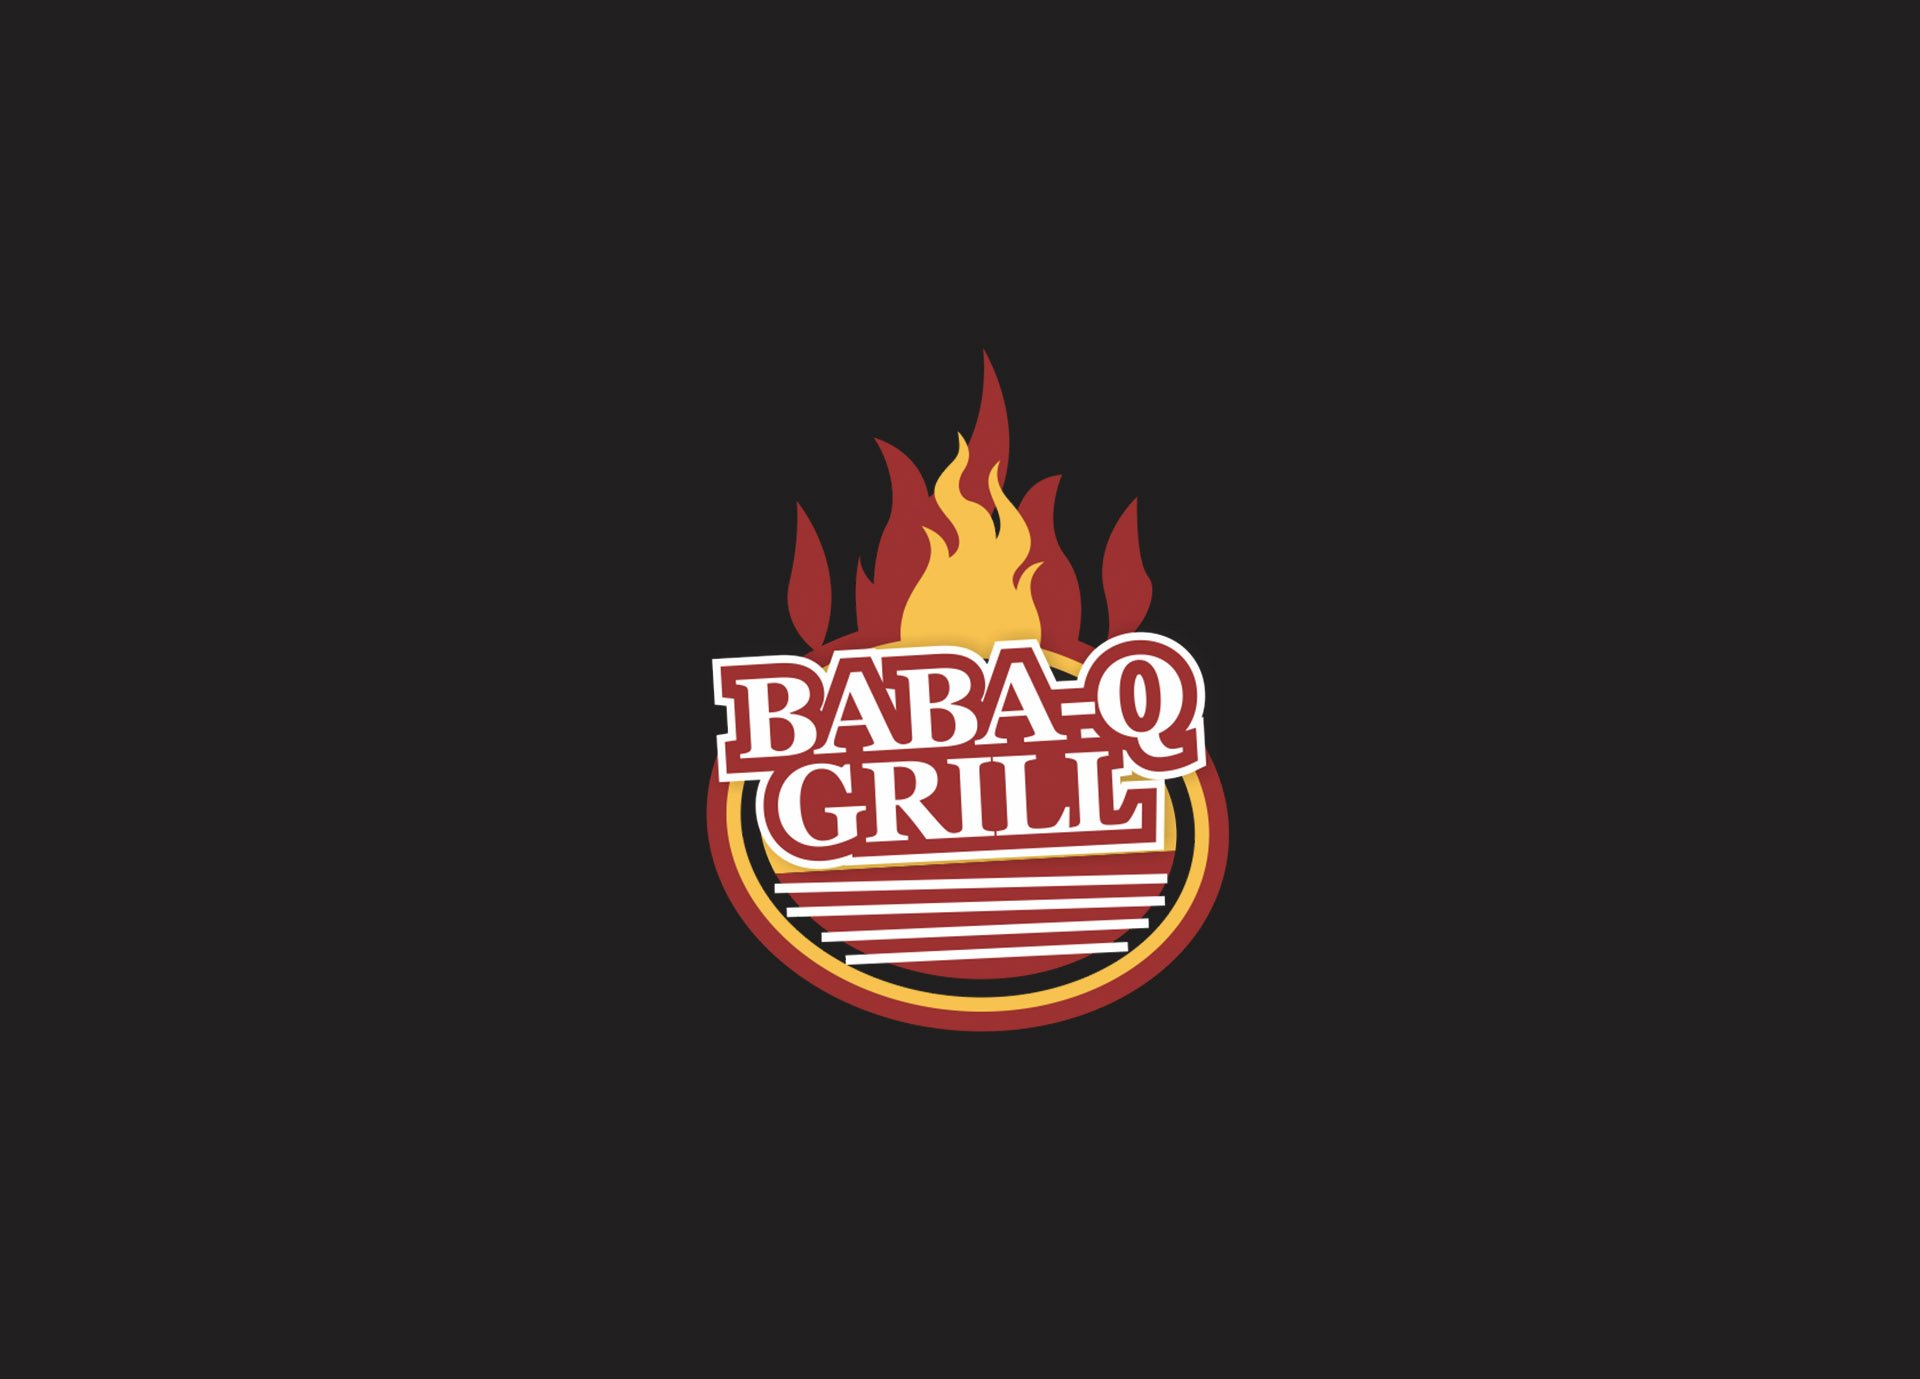 Baba-Q-Grill